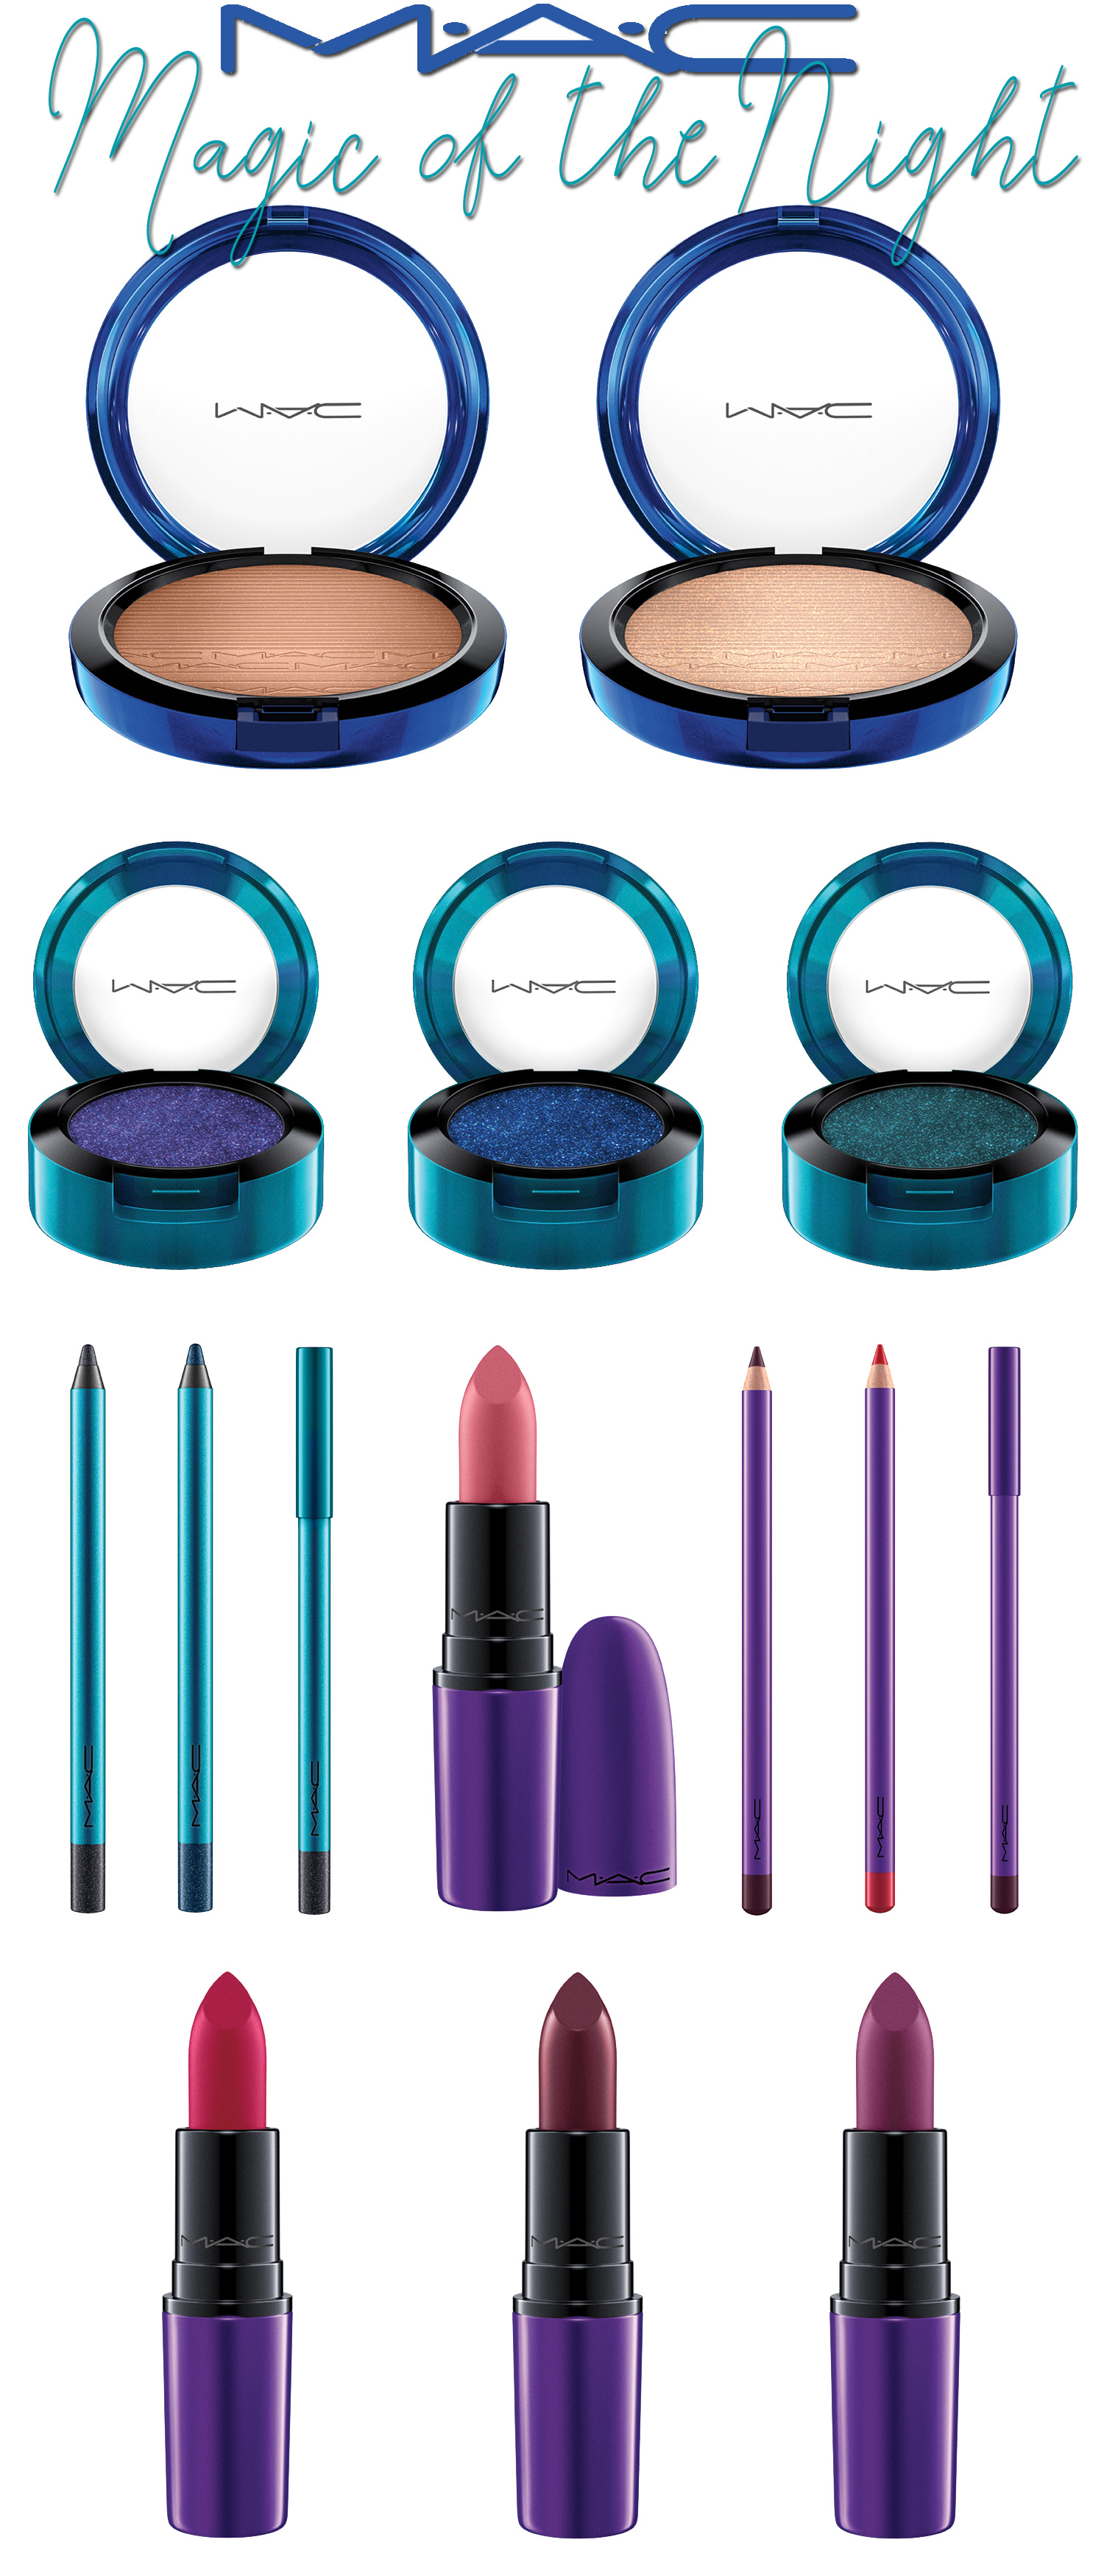 MAC Magic of the Night Holiday Makeup Collection